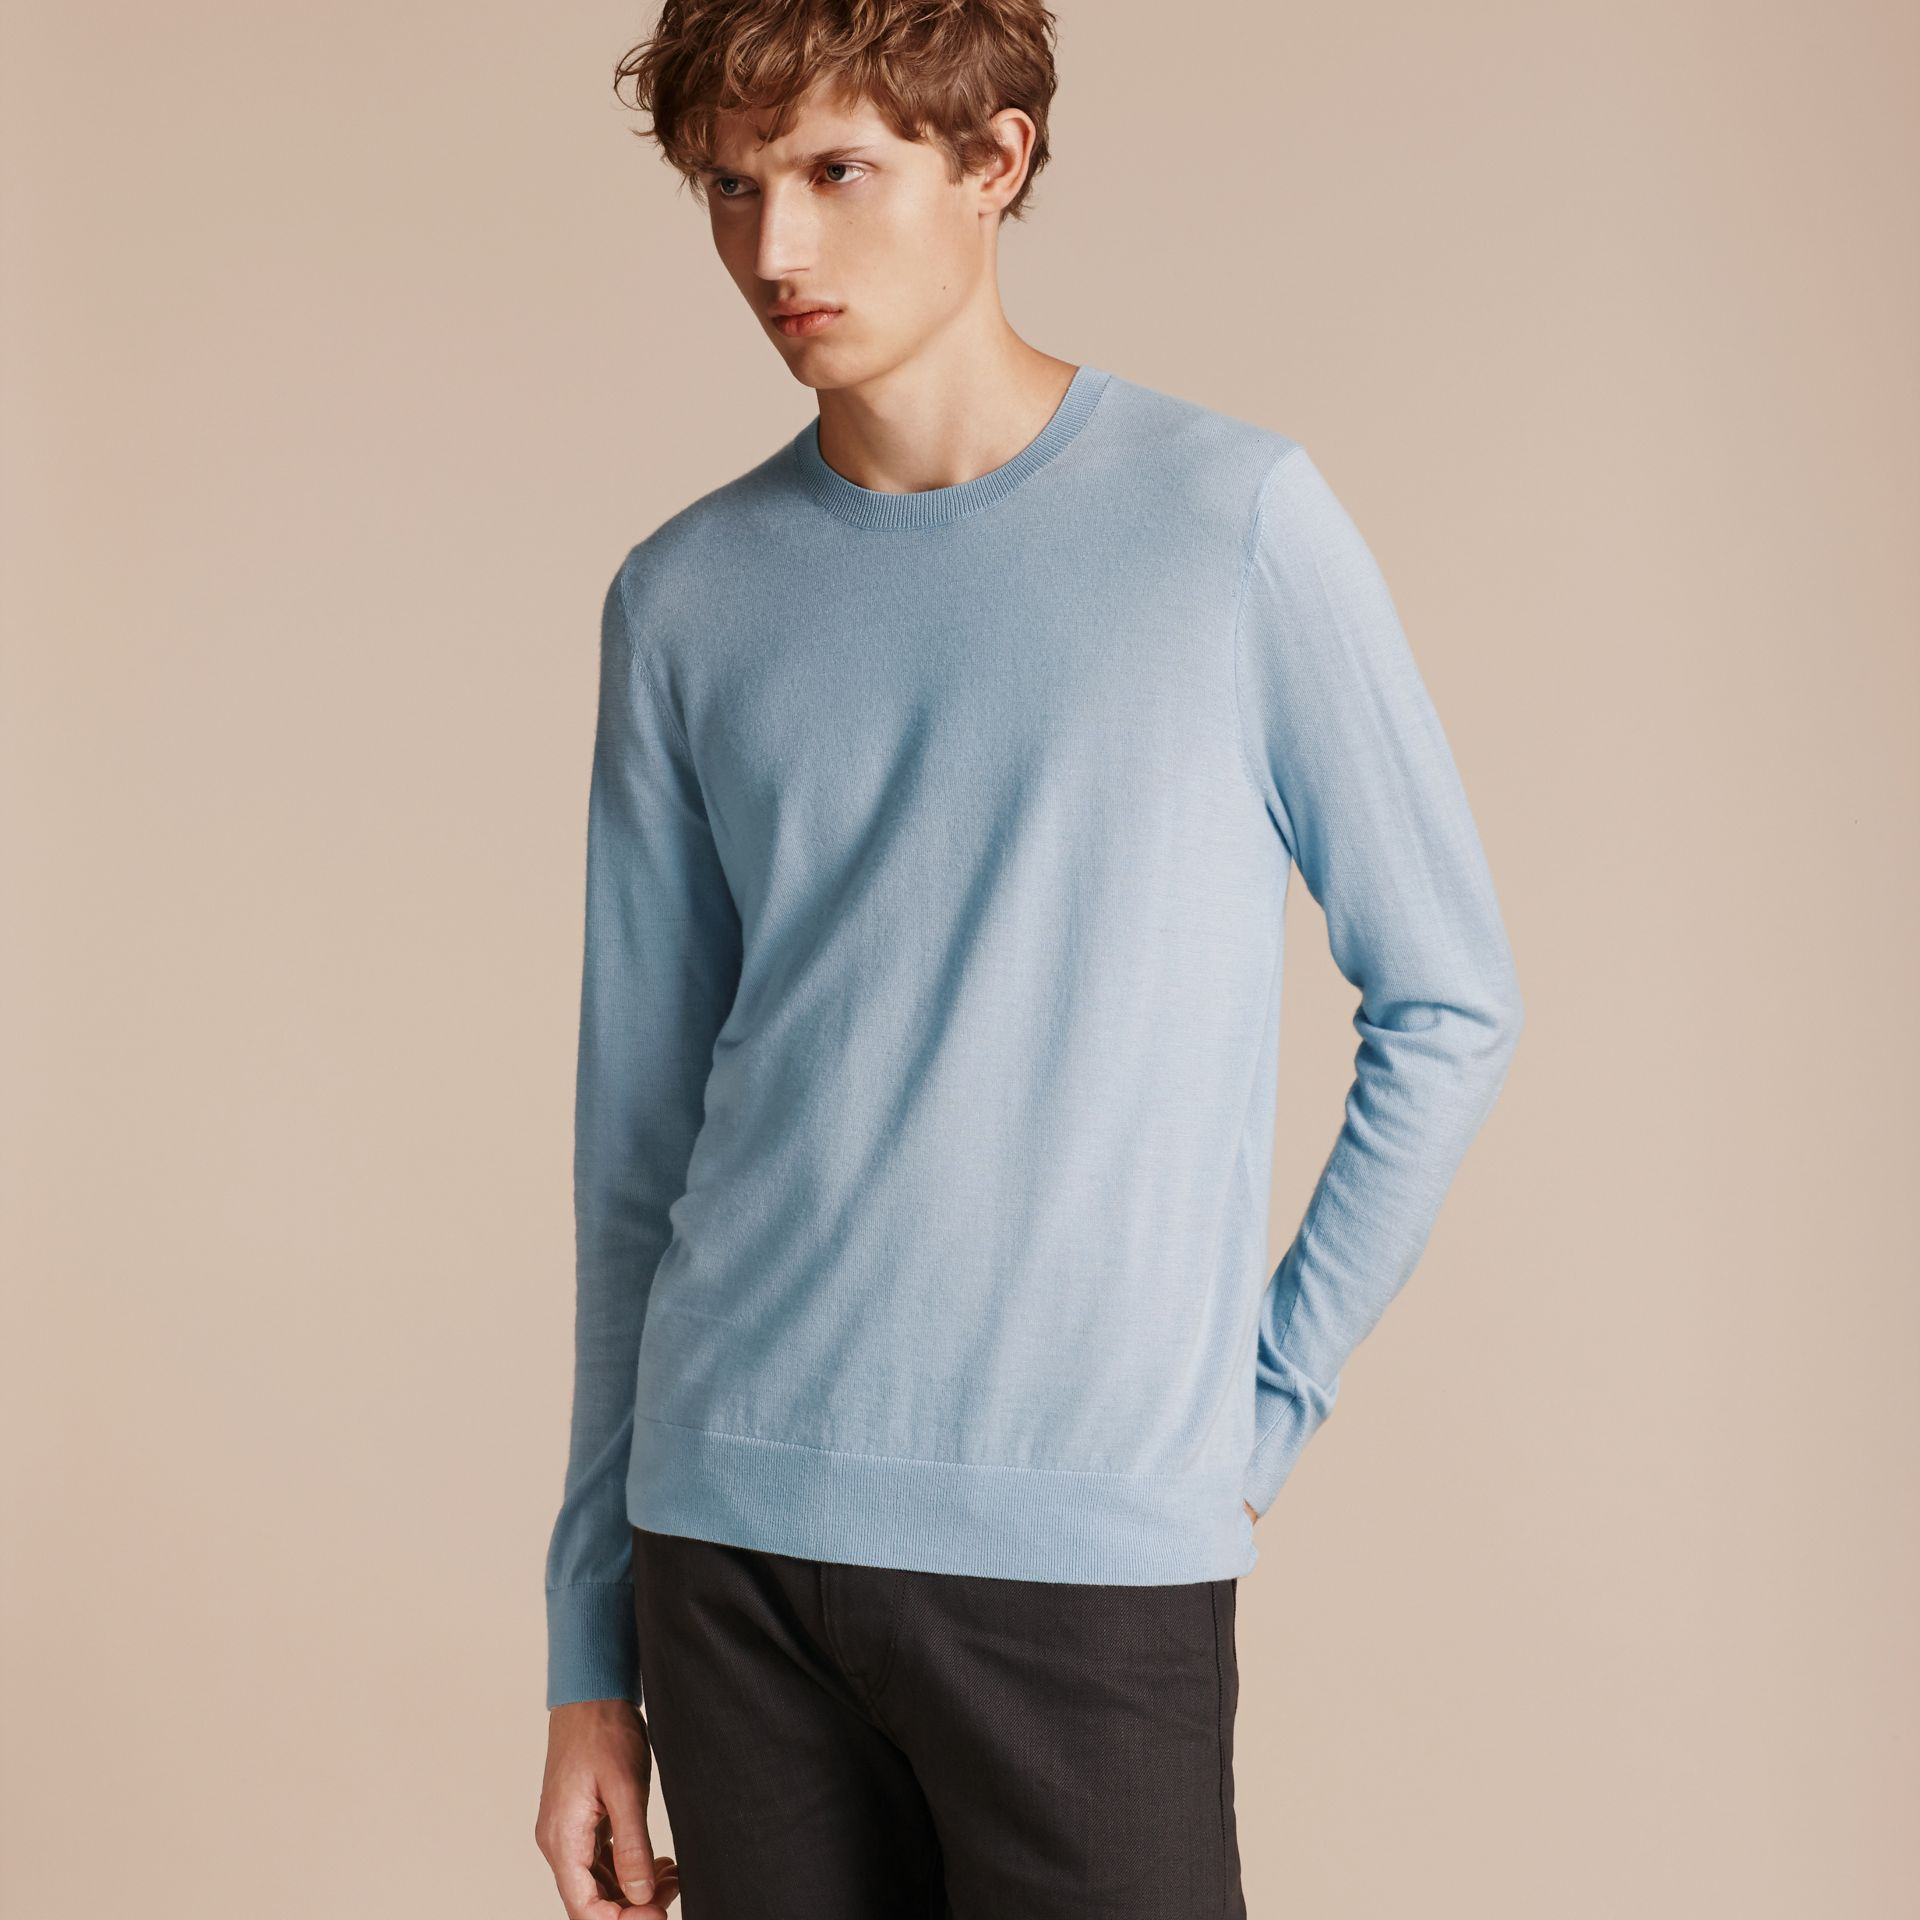 Check Jacquard Detail Cashmere Sweater in Light Blue - Men | Burberry - gallery image 6